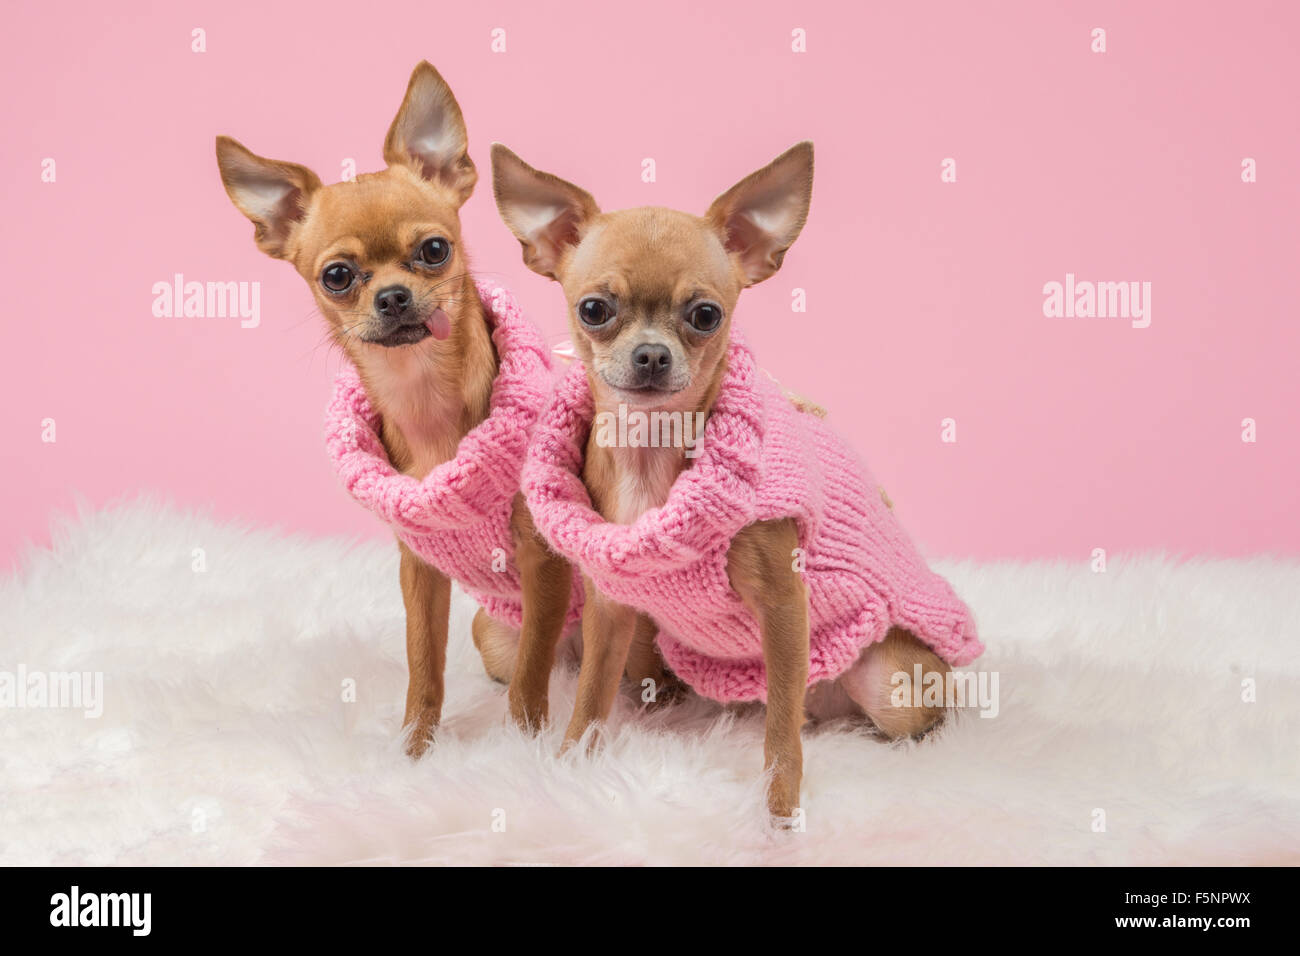 Cute chihuahua dogs with pink knitted sweaters on a pink background - Stock Image